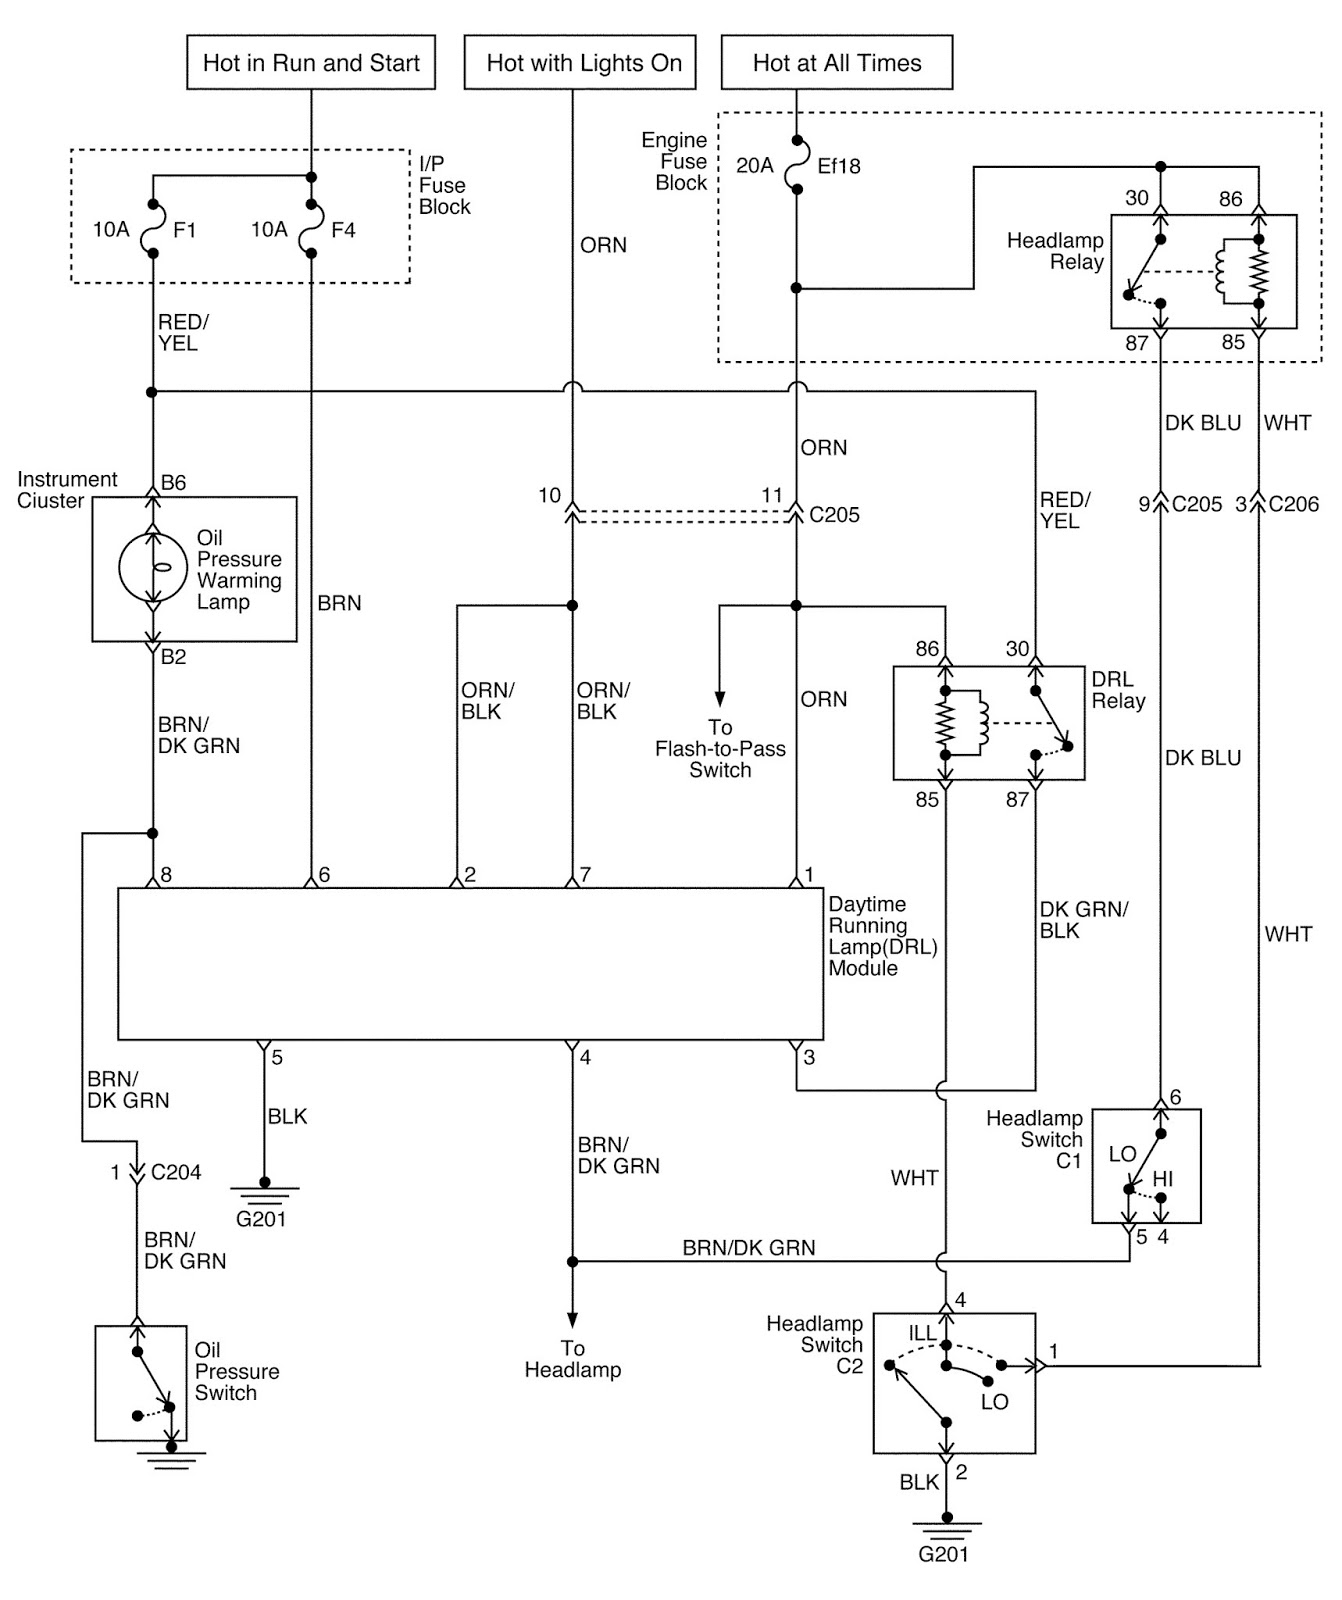 Daewoo Matiz Car Lighting Systems Schematic And Routing Diagrams Tico Wiring Diagram Click On Circuits To Enlarge